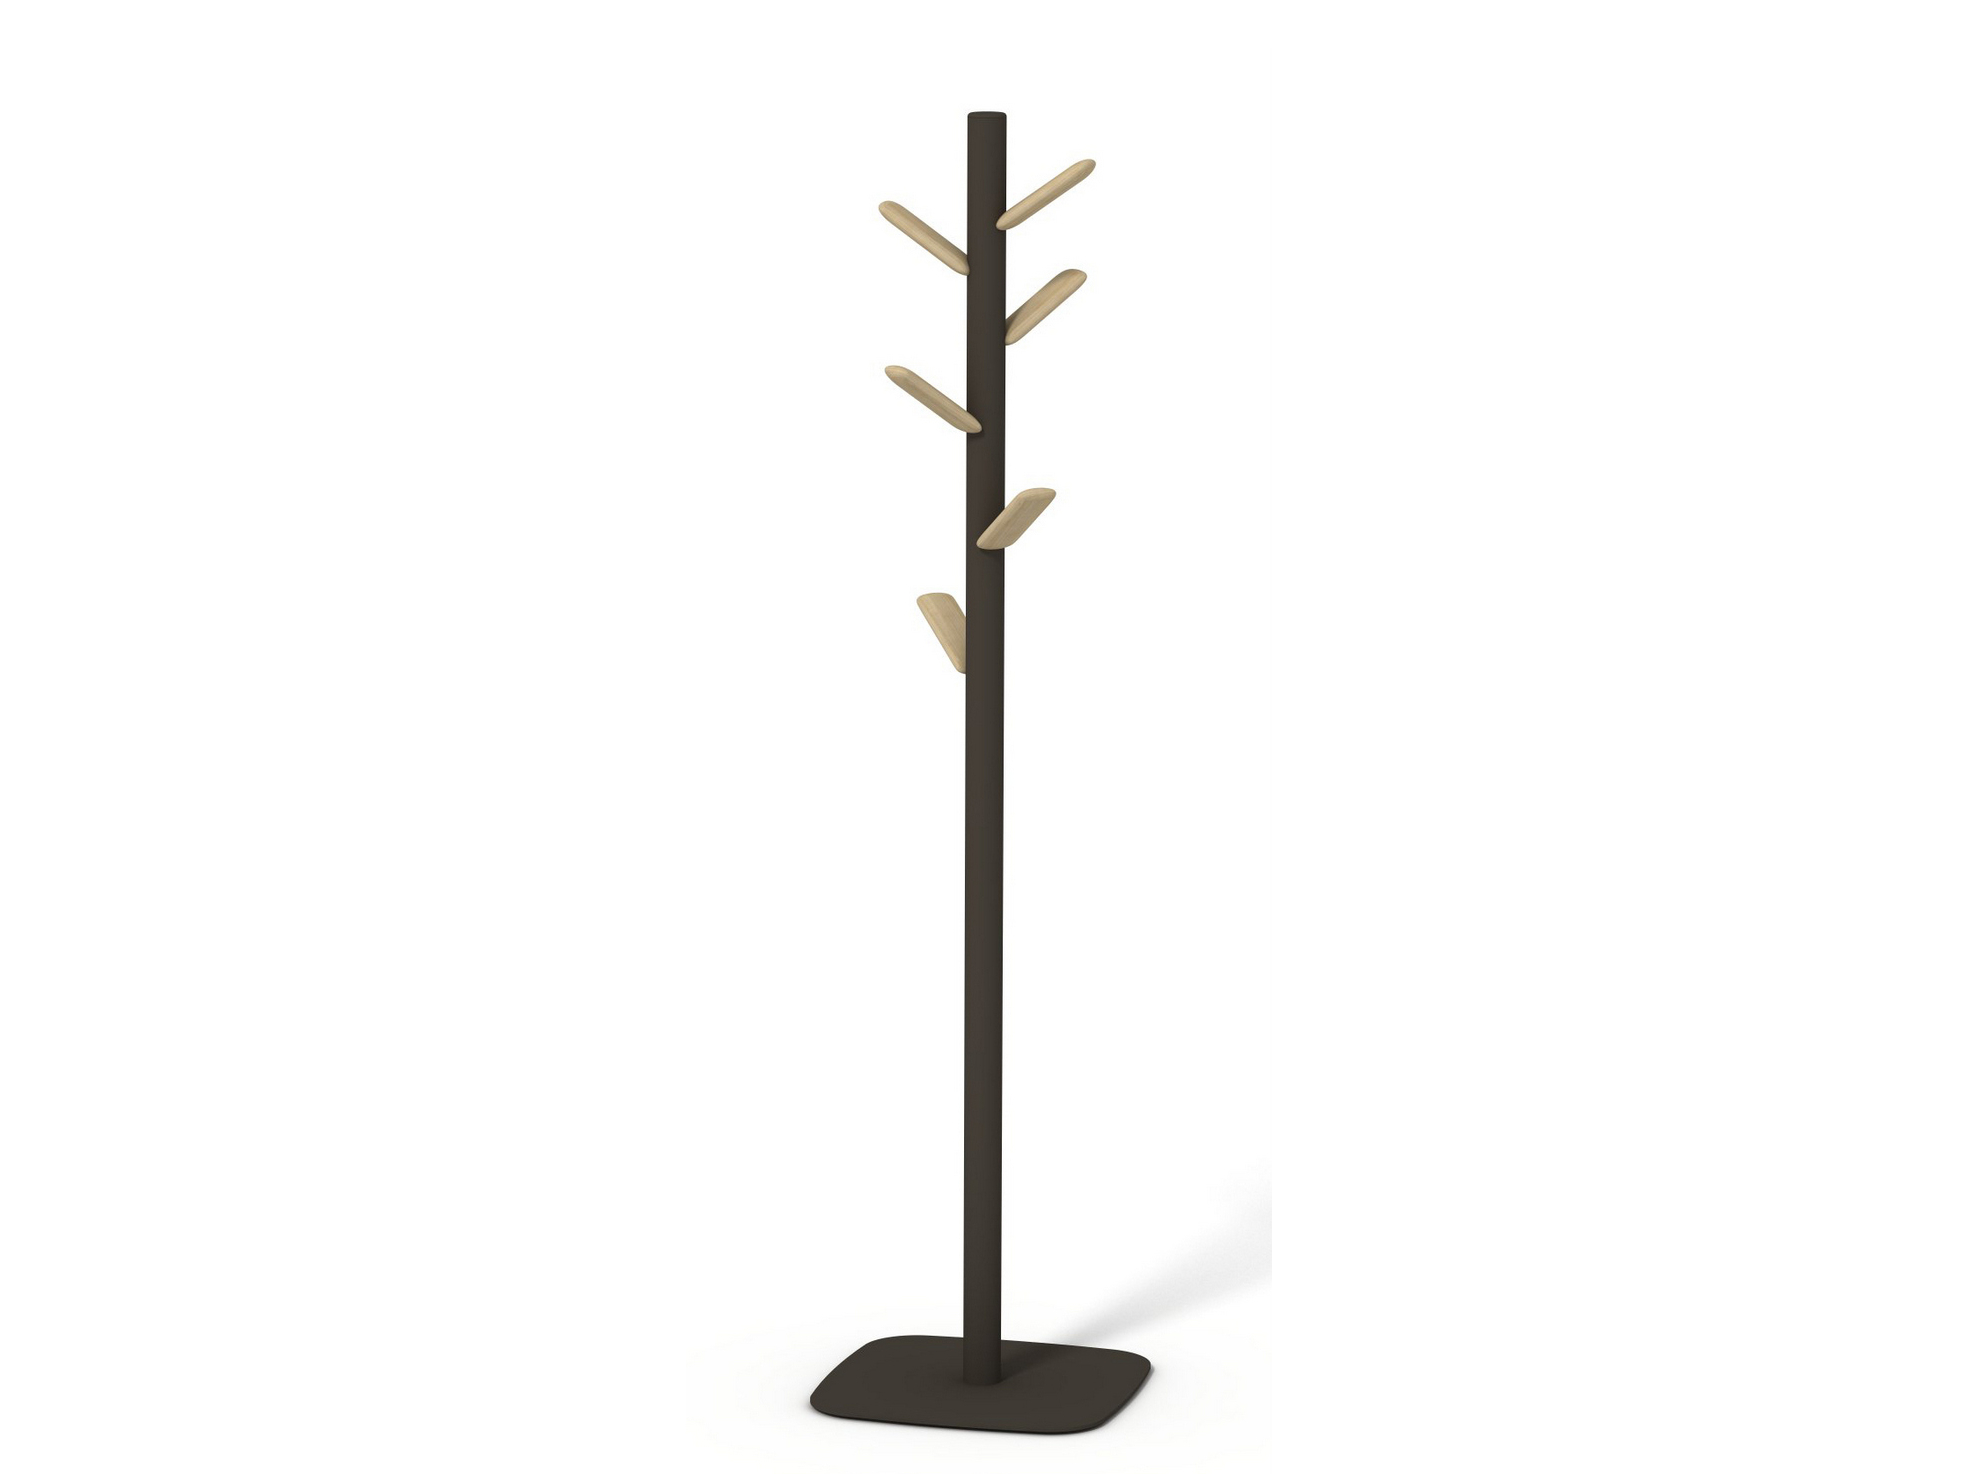 Caddy Coat Stand by Lievore Altherr Molina for ENEA